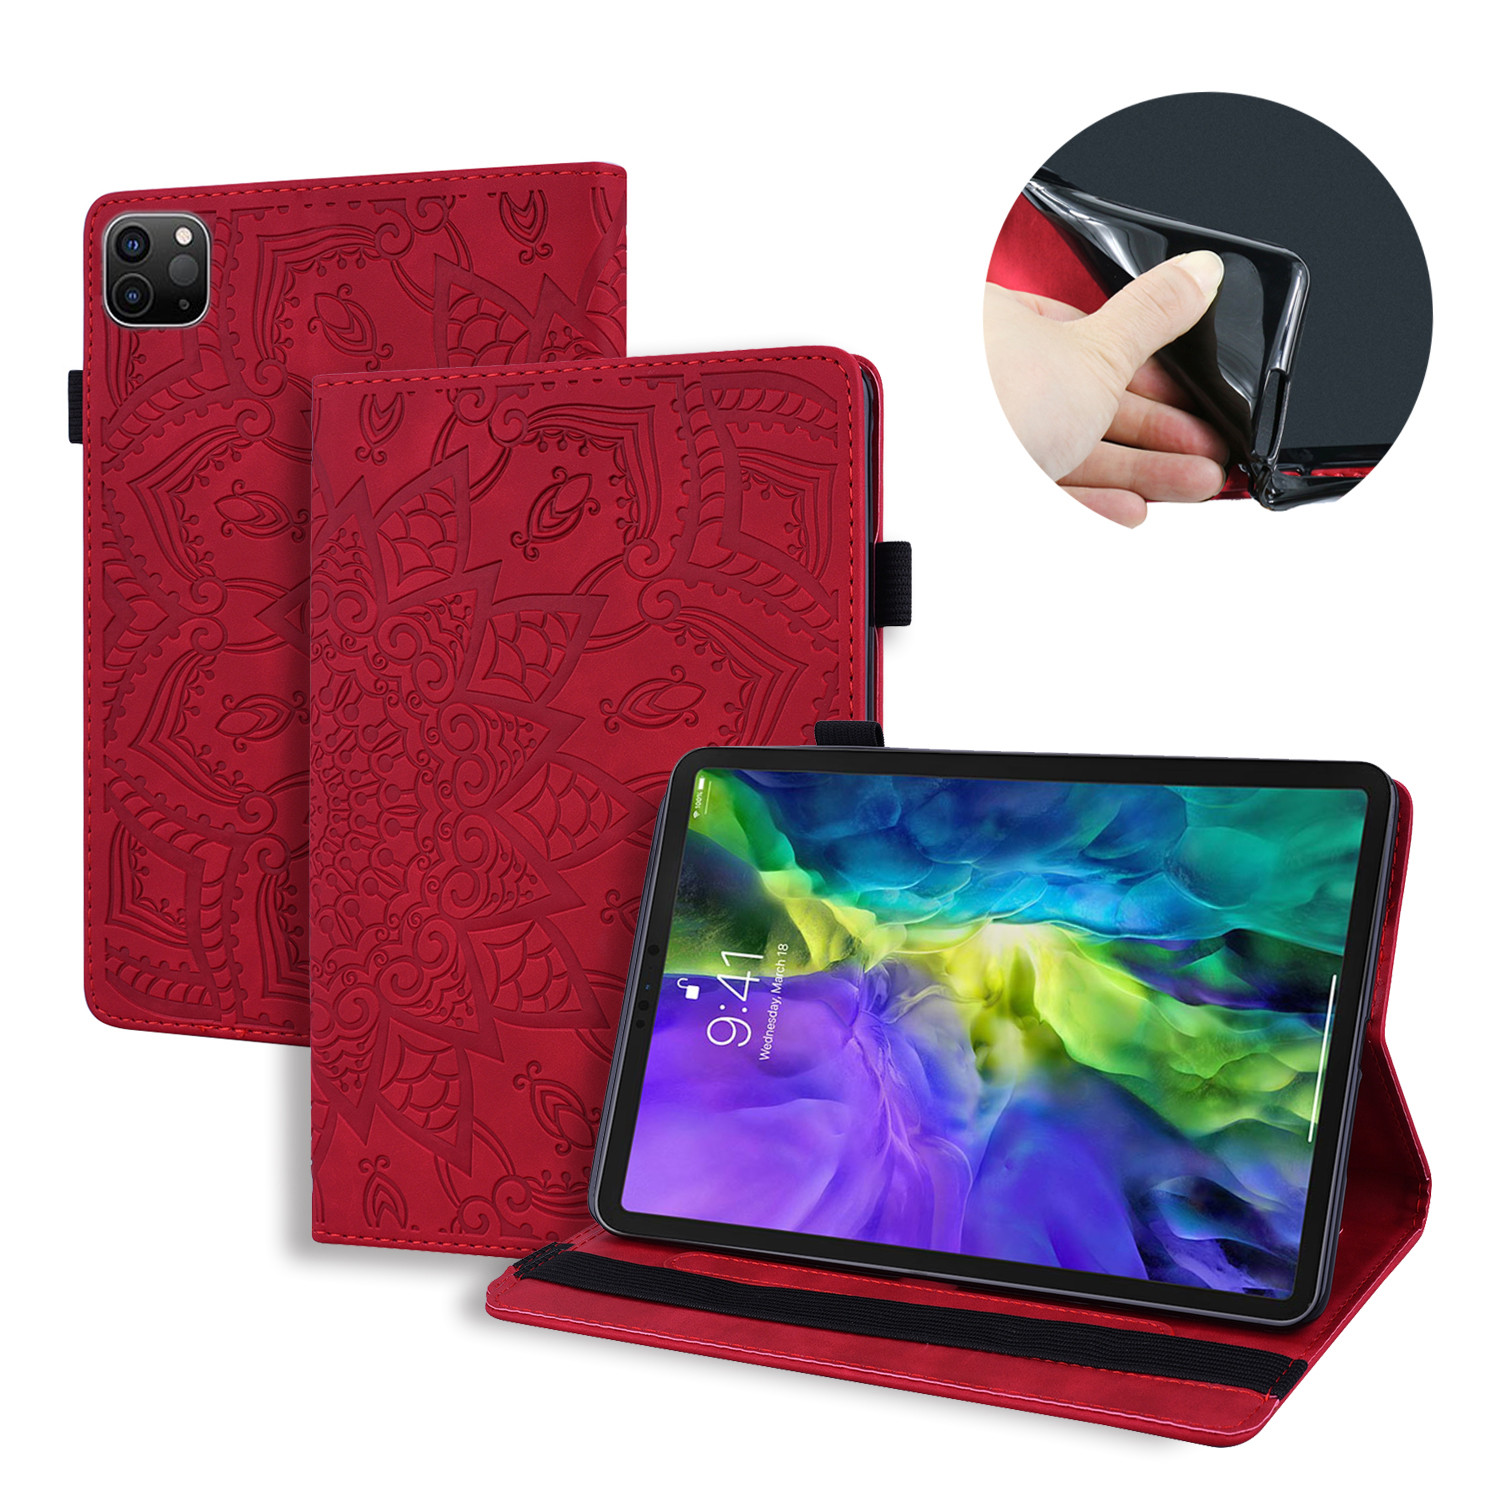 4 Green 5 Color Flower 3D Emboss Leather Cover For Apple iPad Pro 12 9 2020 Case Tablet